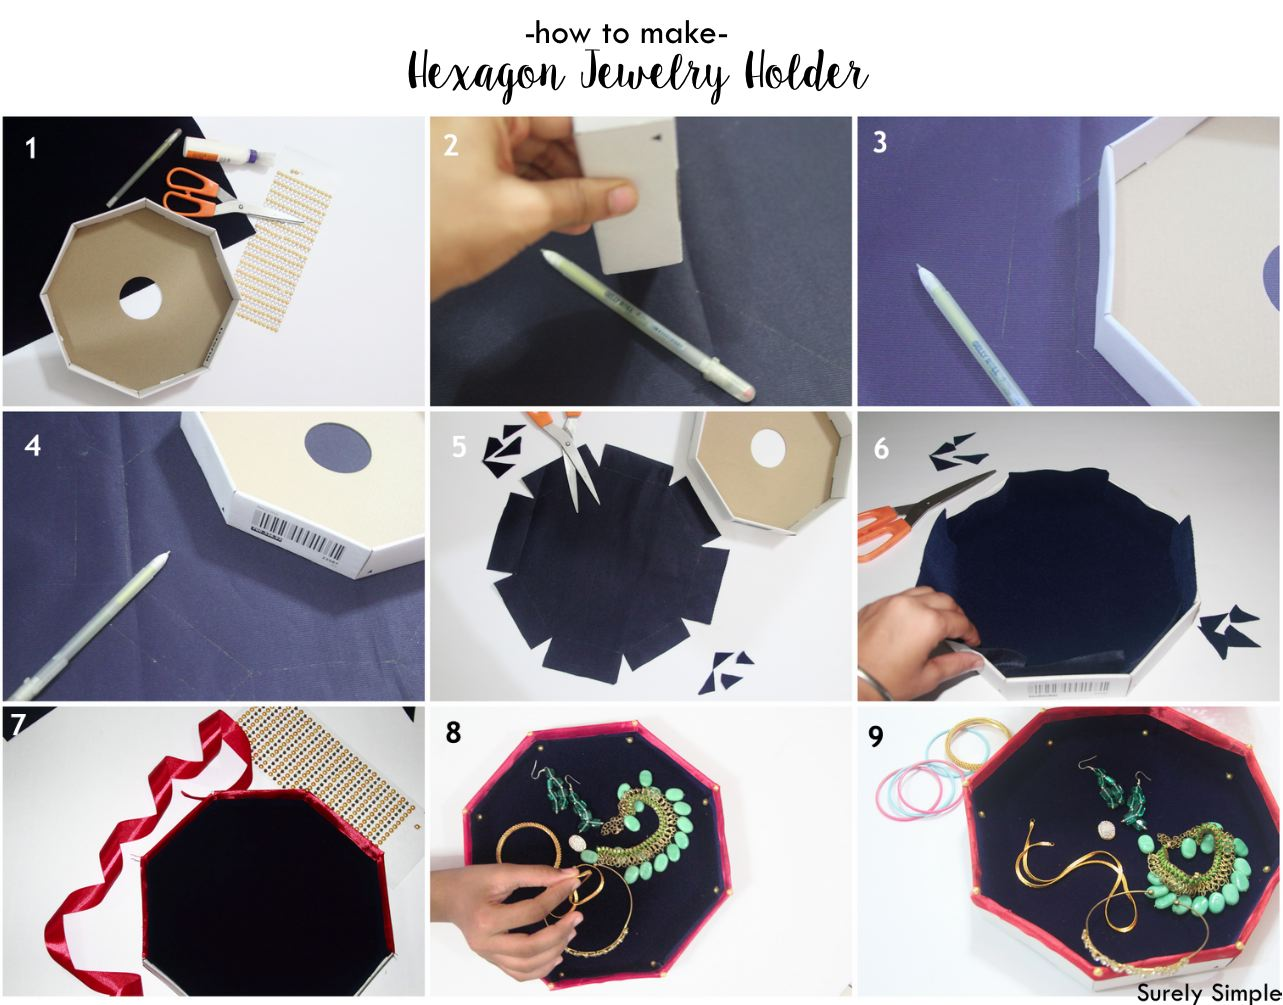 DIY Hexagon Jewelery Holder via www.surelysimple.com